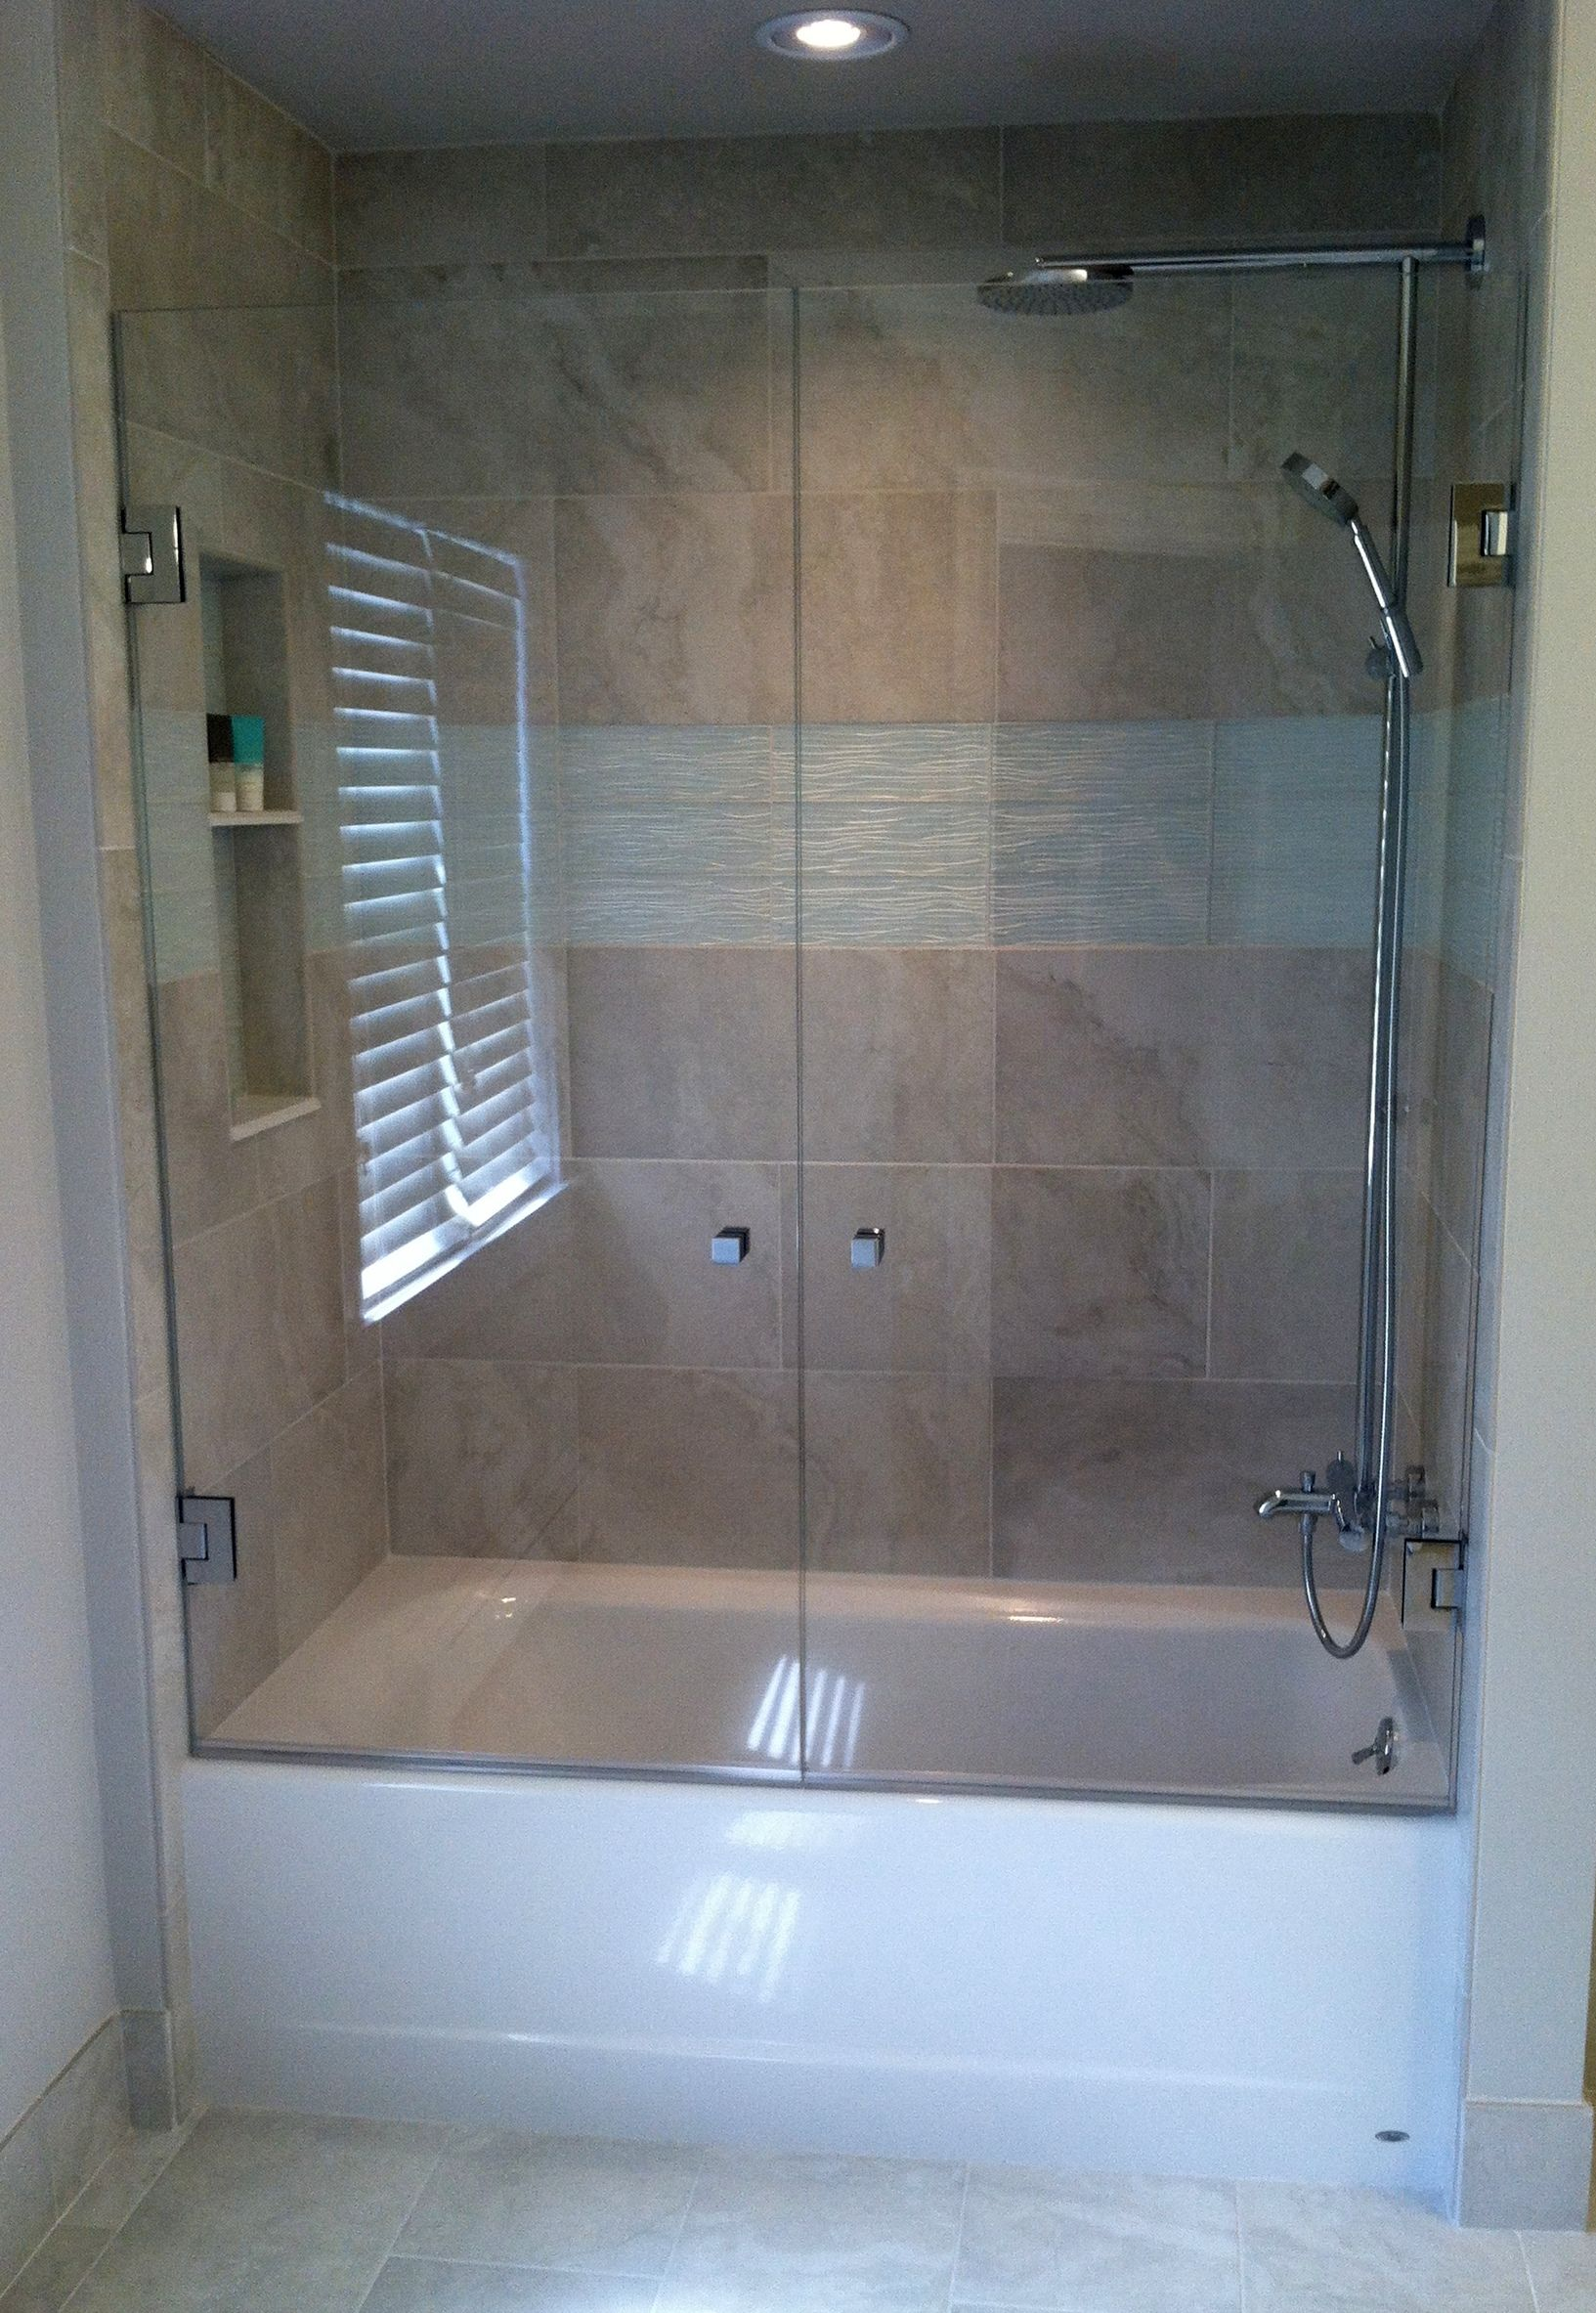 French Shower Doors Mount A Swing Door On Each Wall To Open Up Your Bathtub Space Bathtub Shower Doors Tub Shower Doors Tub With Glass Door